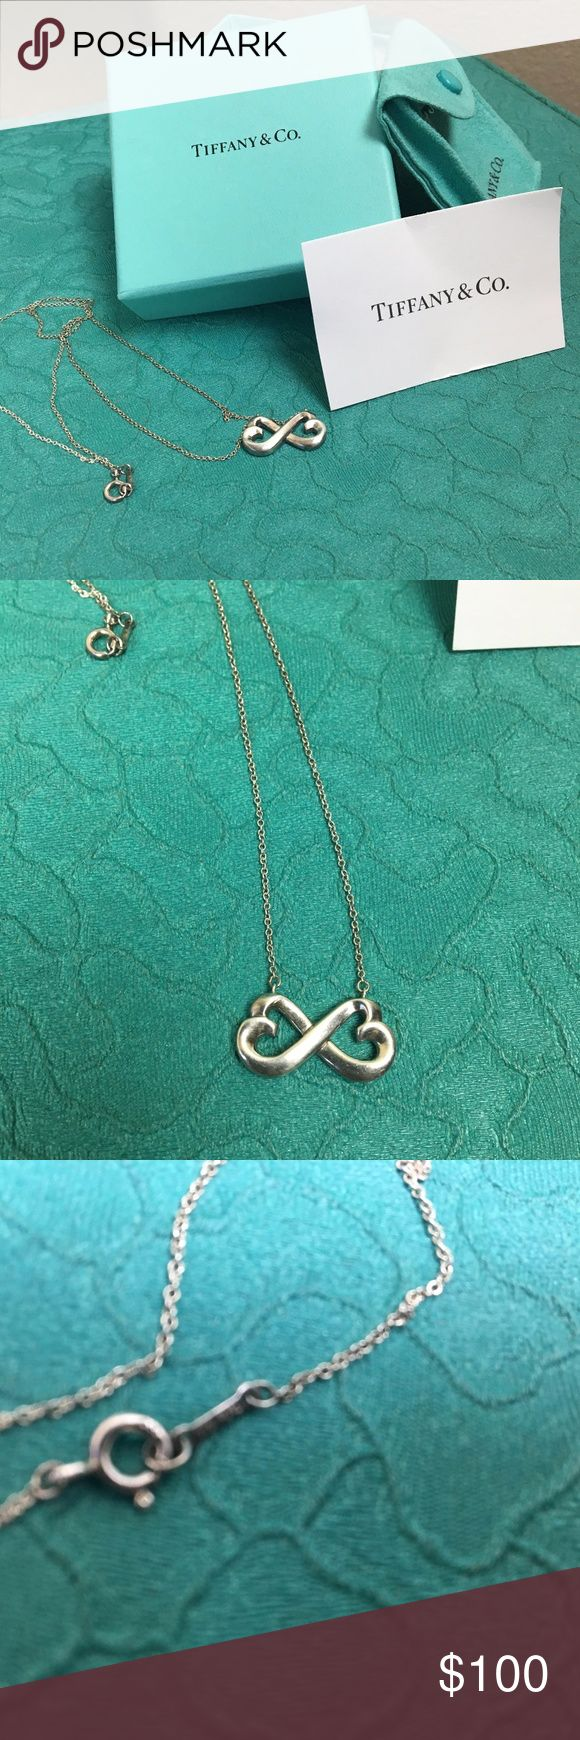 Tiffany and Co. infinity heart necklace Excellent Tiffany and Co. infinity heart necklace. Amazing condition, still comes with box, pouch, and care card. Tiffany & Co. Jewelry Necklaces